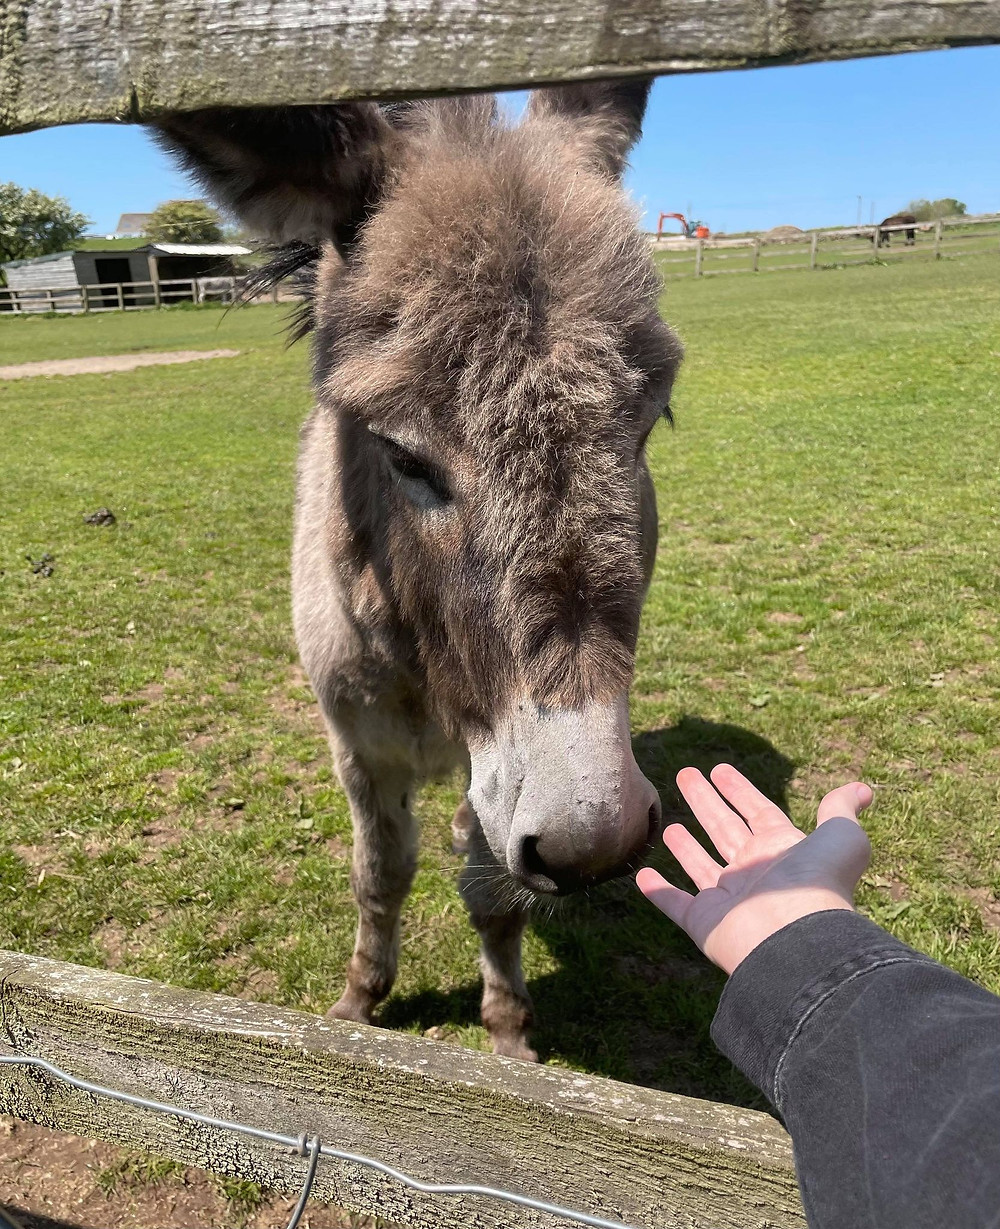 Ross's arm reaching through a fence to touch a donkey